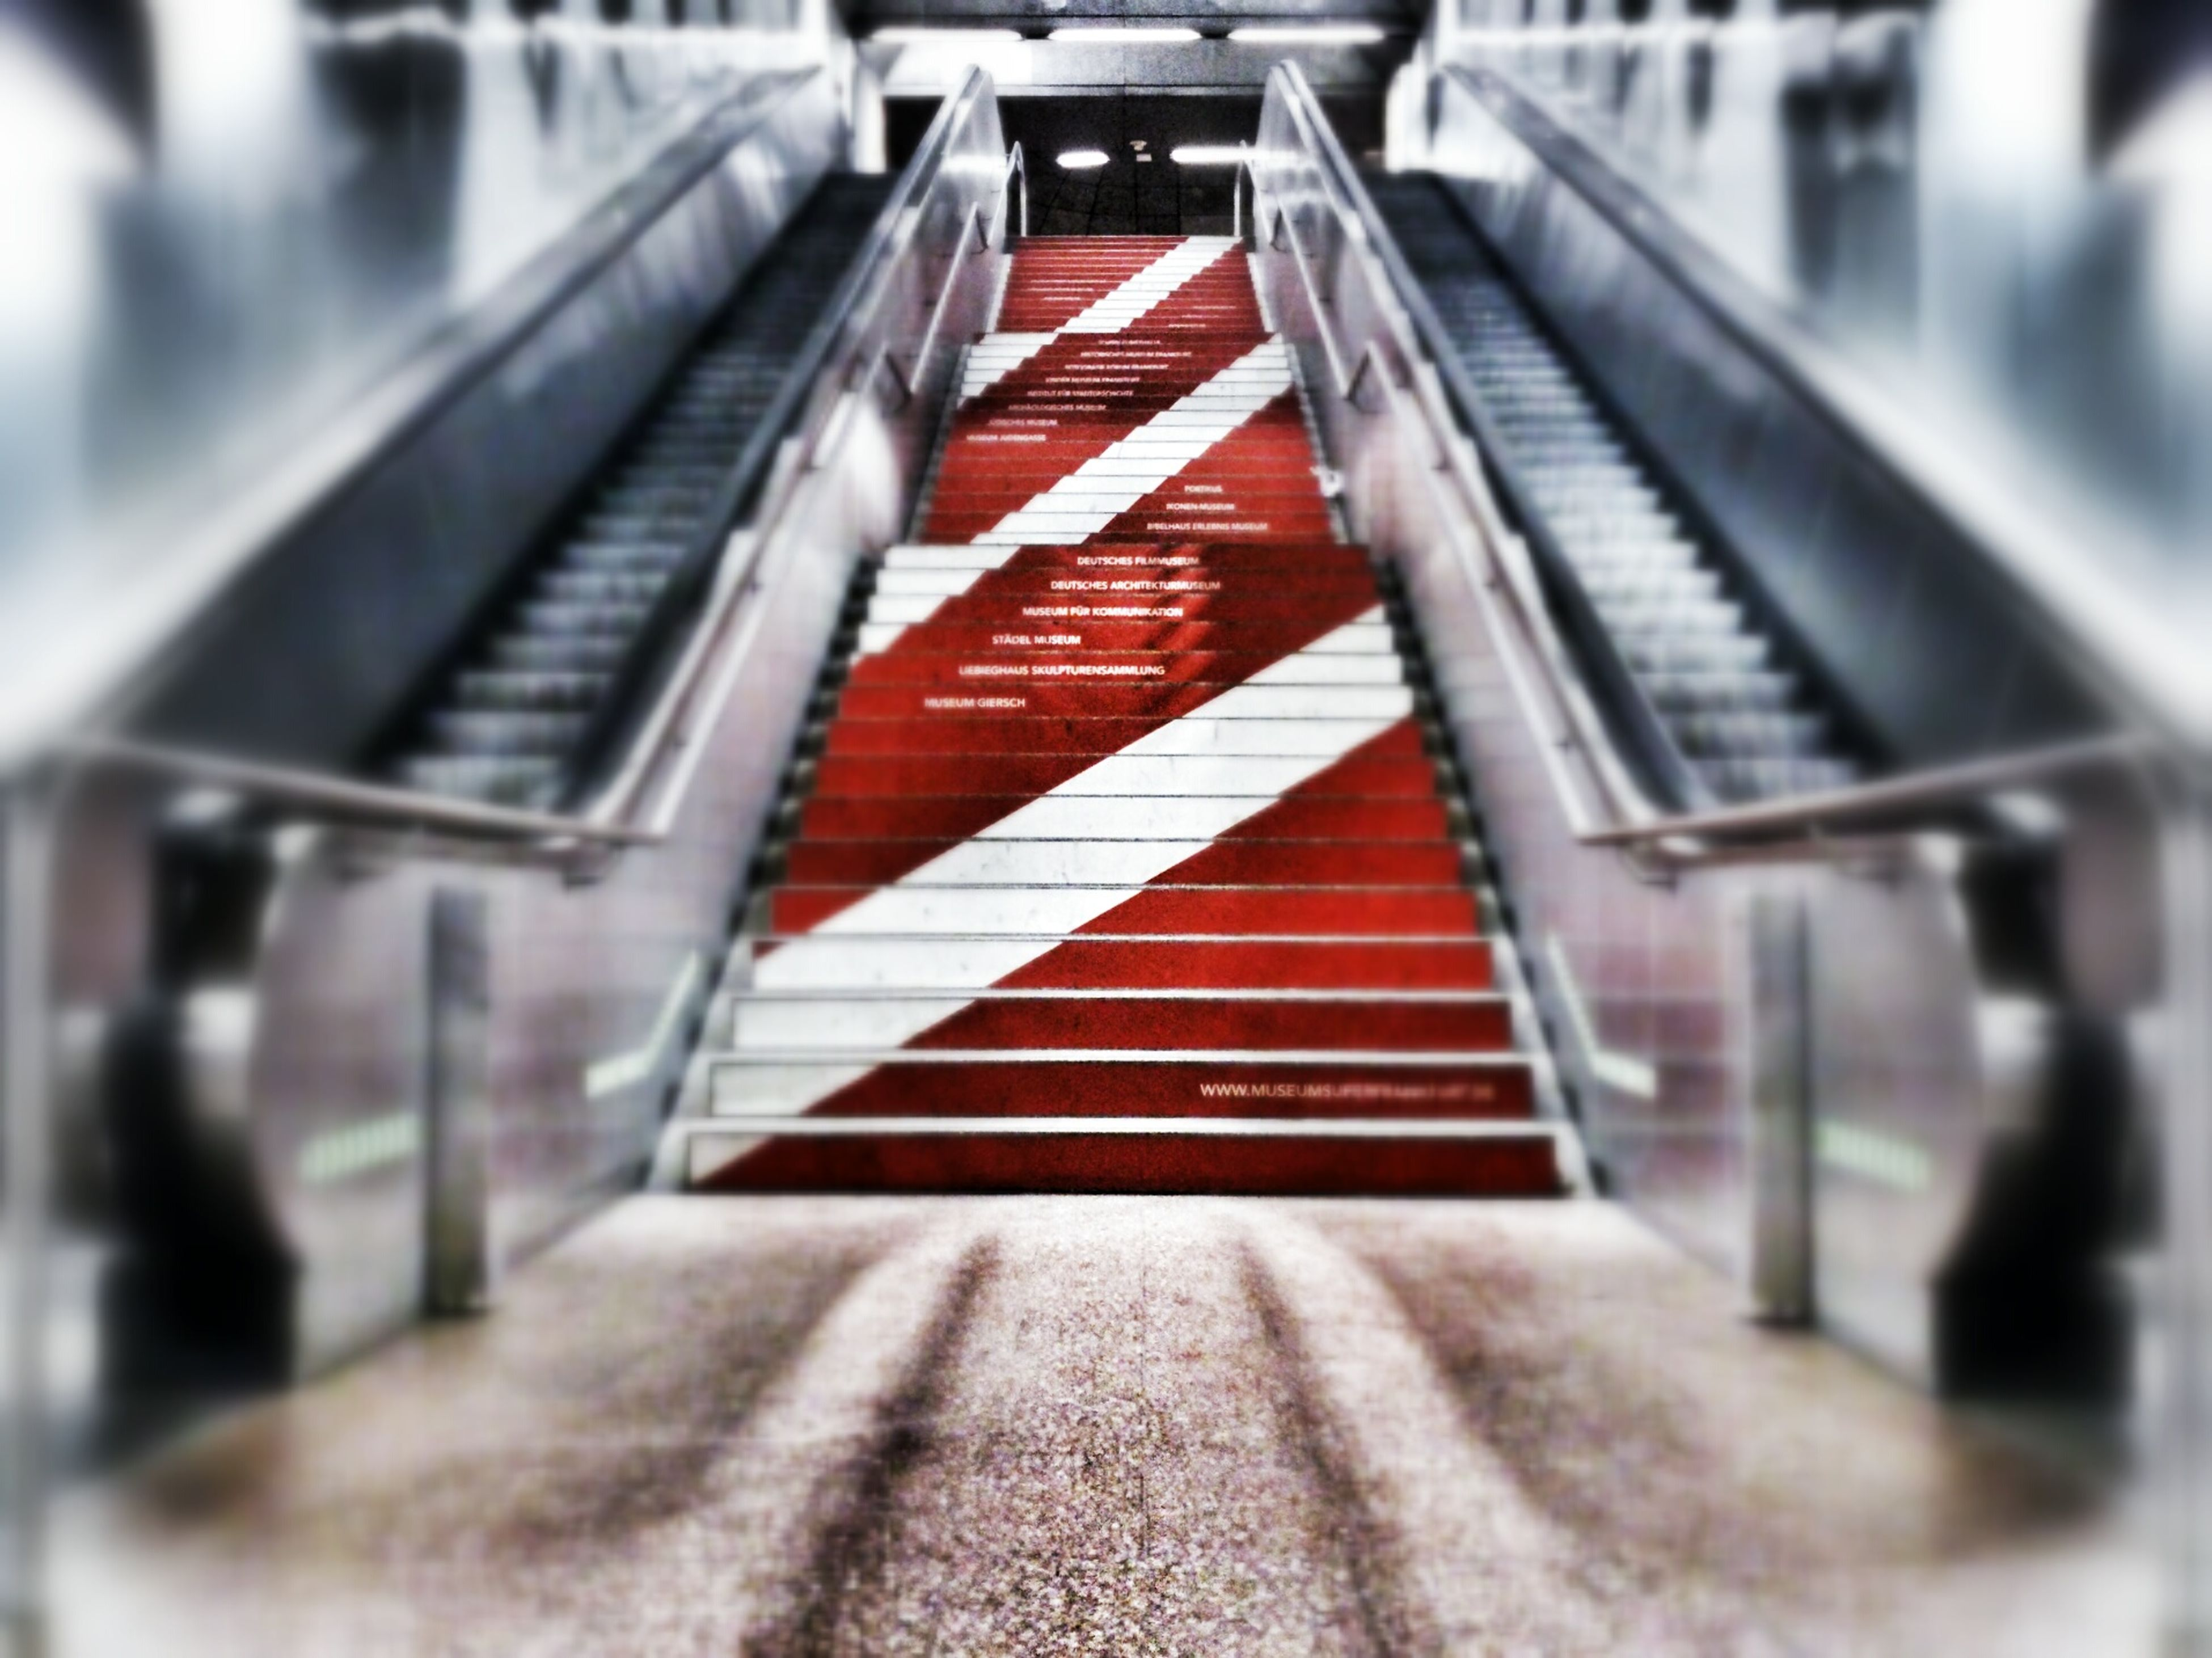 steps, railing, staircase, built structure, architecture, red, steps and staircases, low angle view, building exterior, selective focus, day, metal, focus on foreground, no people, outdoors, stairs, diminishing perspective, connection, sunlight, striped